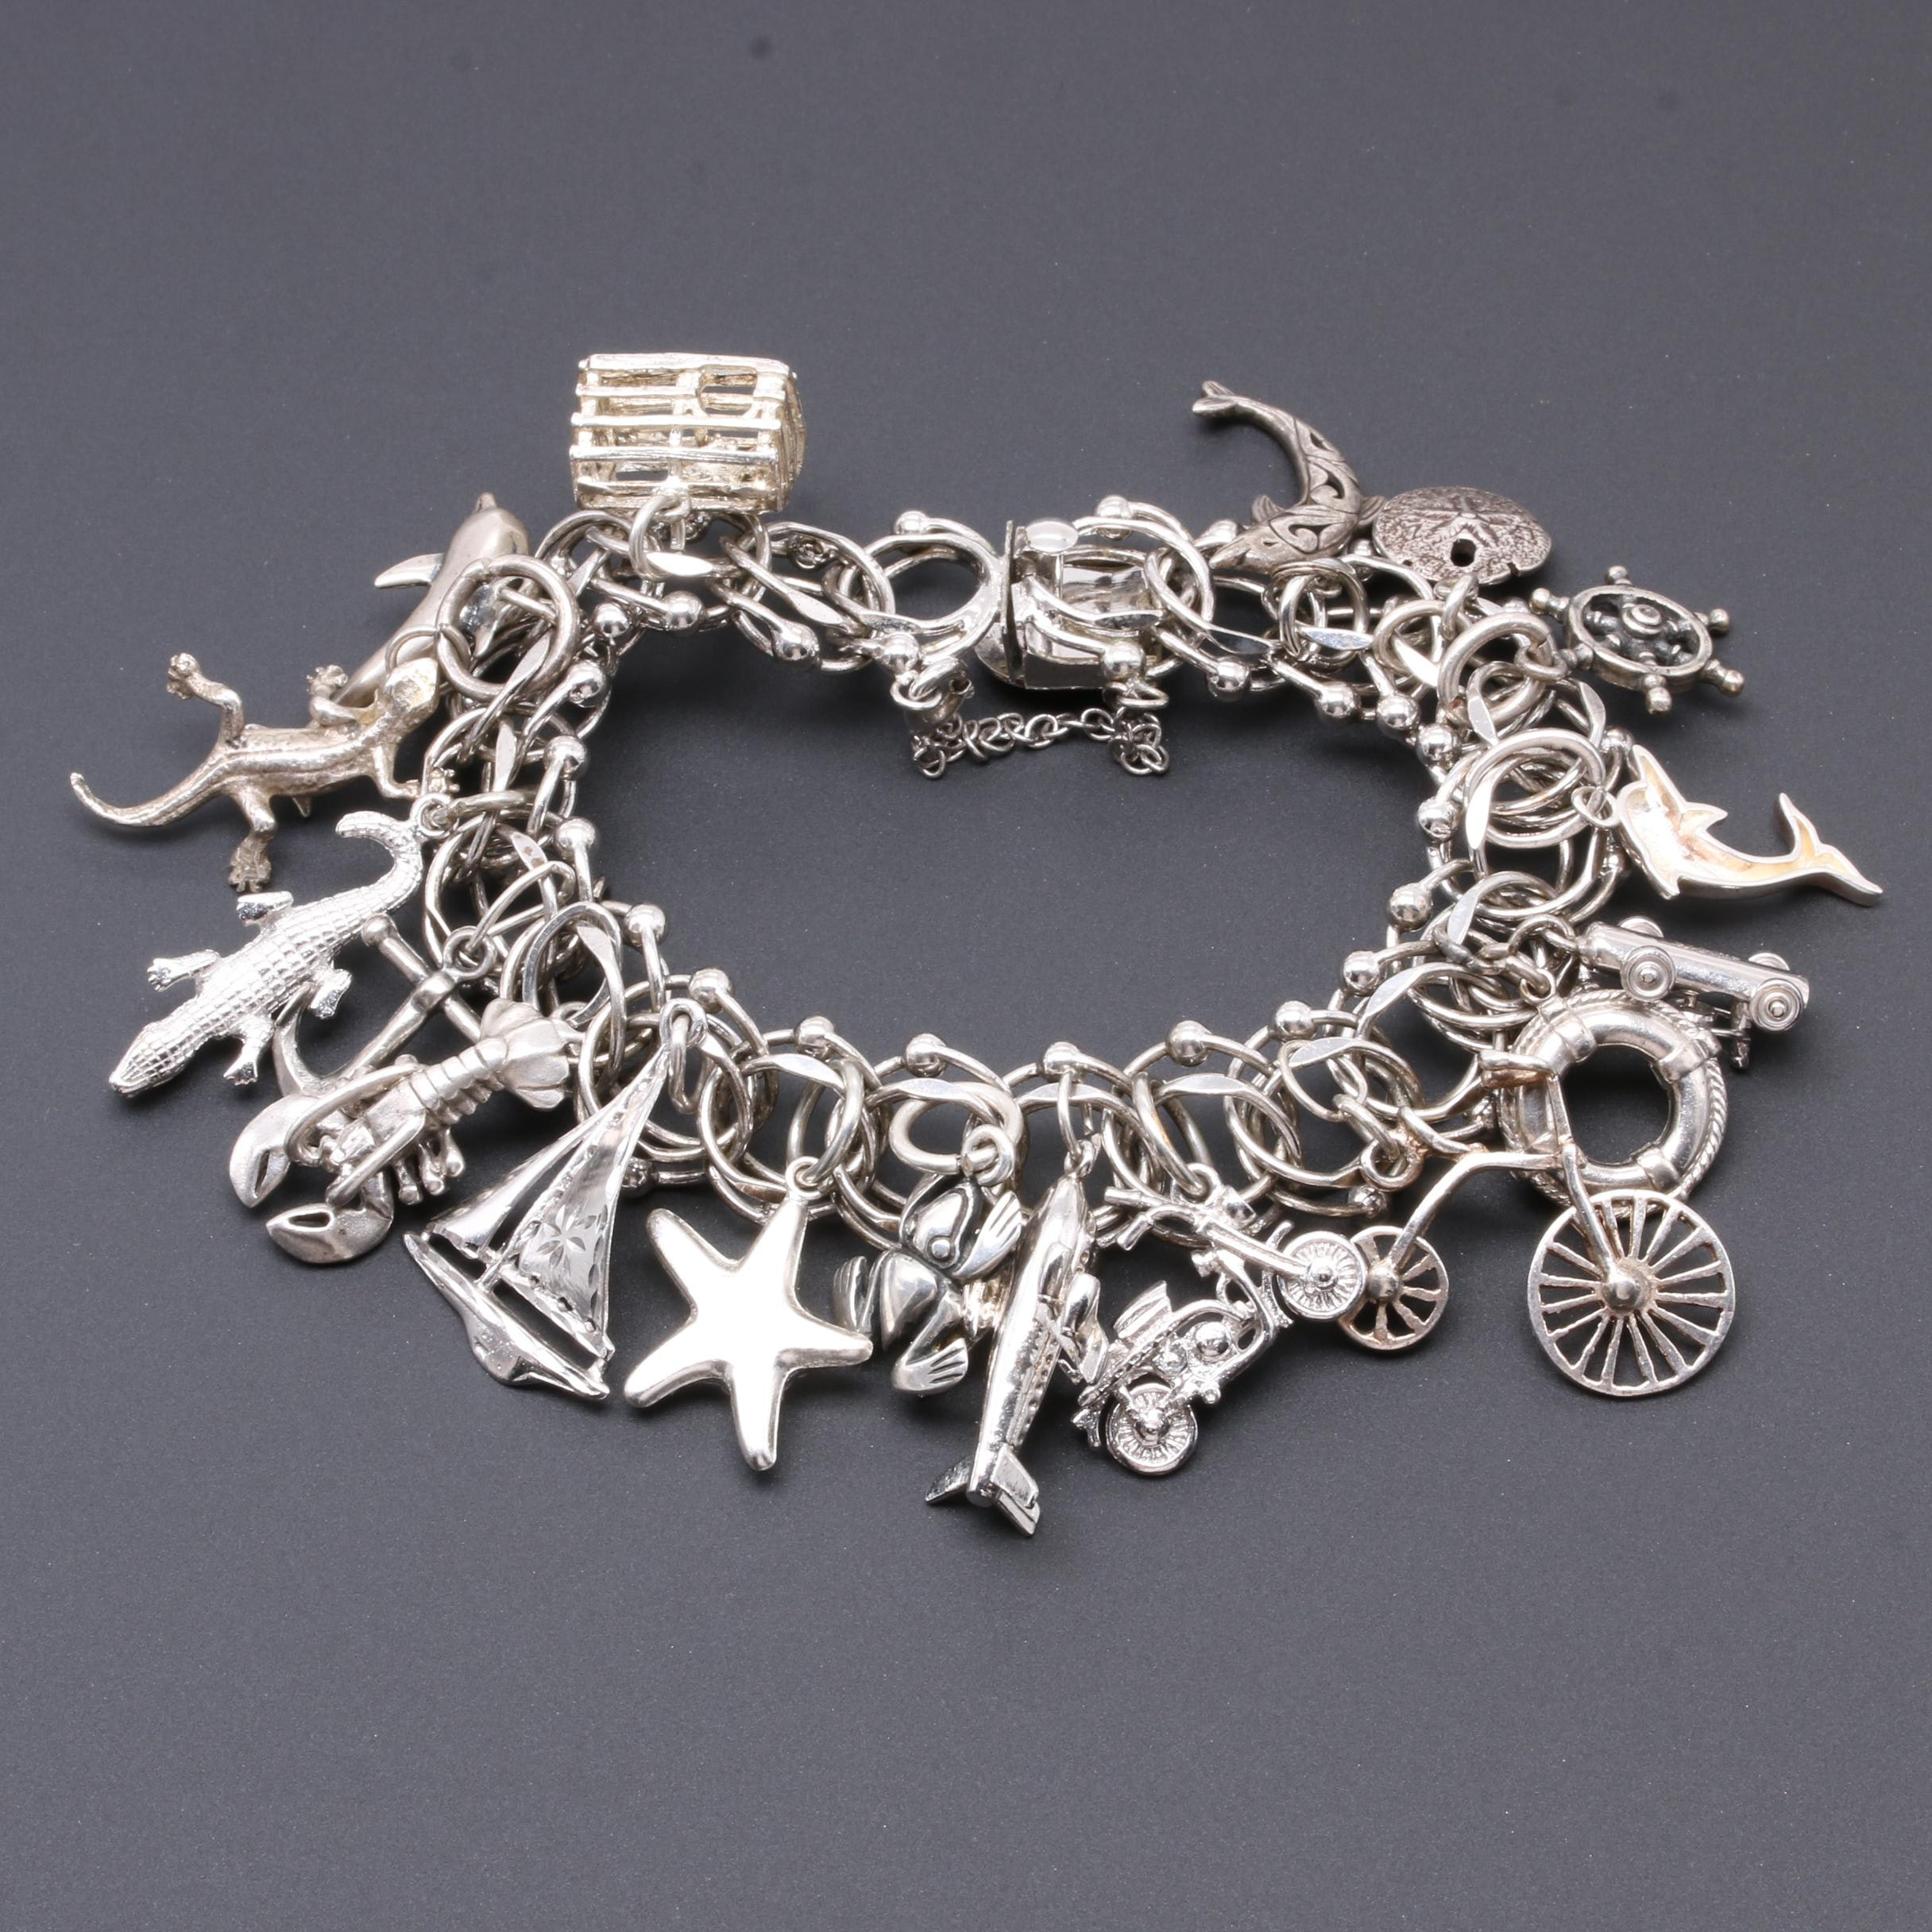 Sterling Silver Charm Bracelet Including Foilbacked Glass